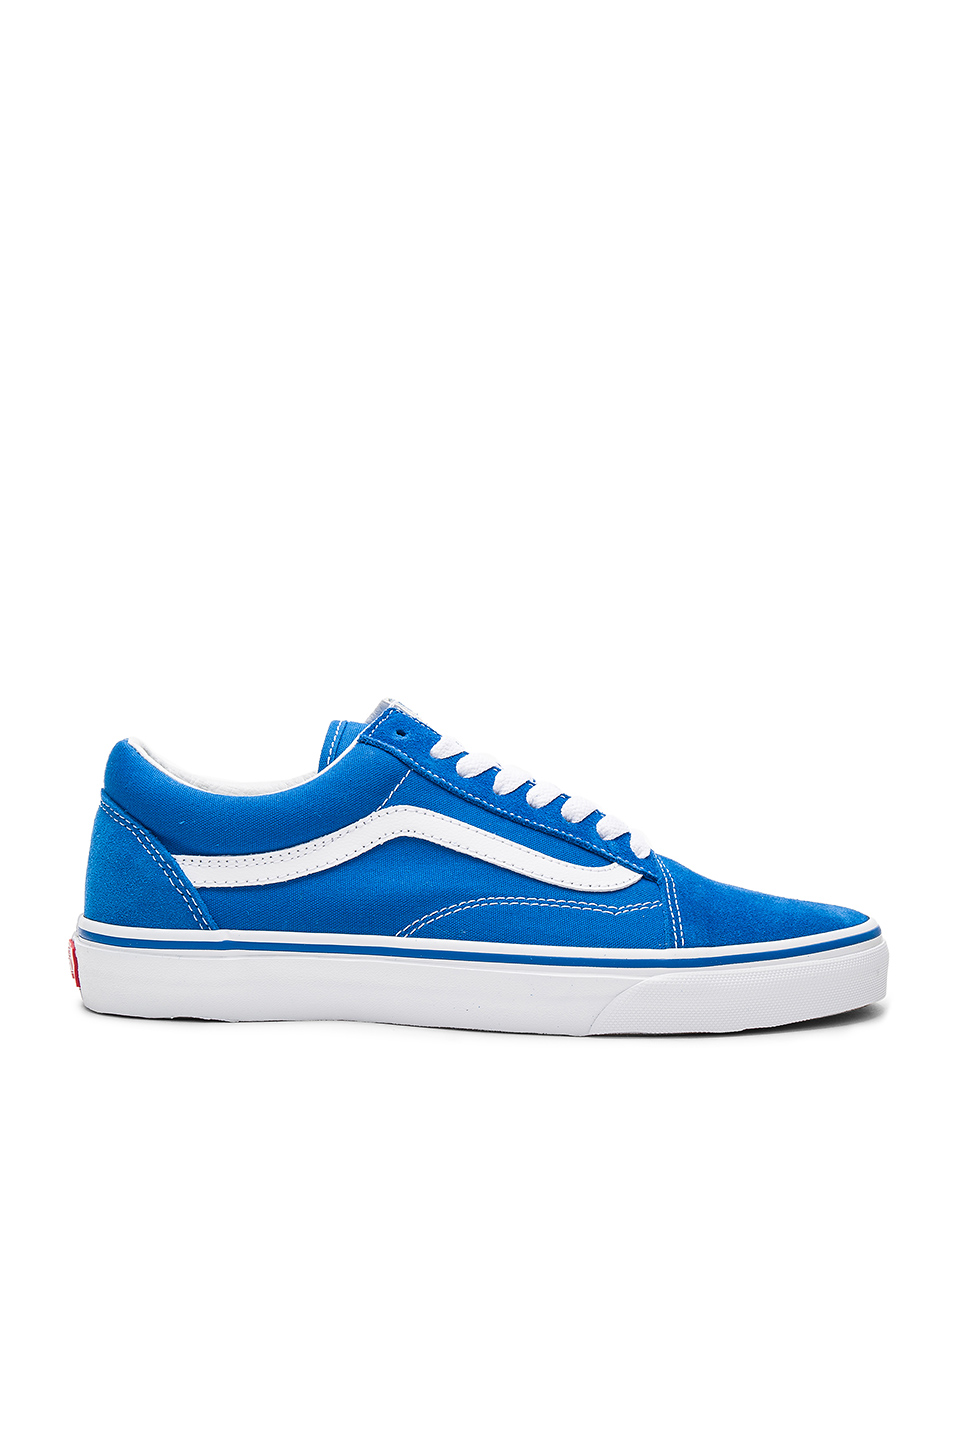 Old Skool In Imperial Blue & True White